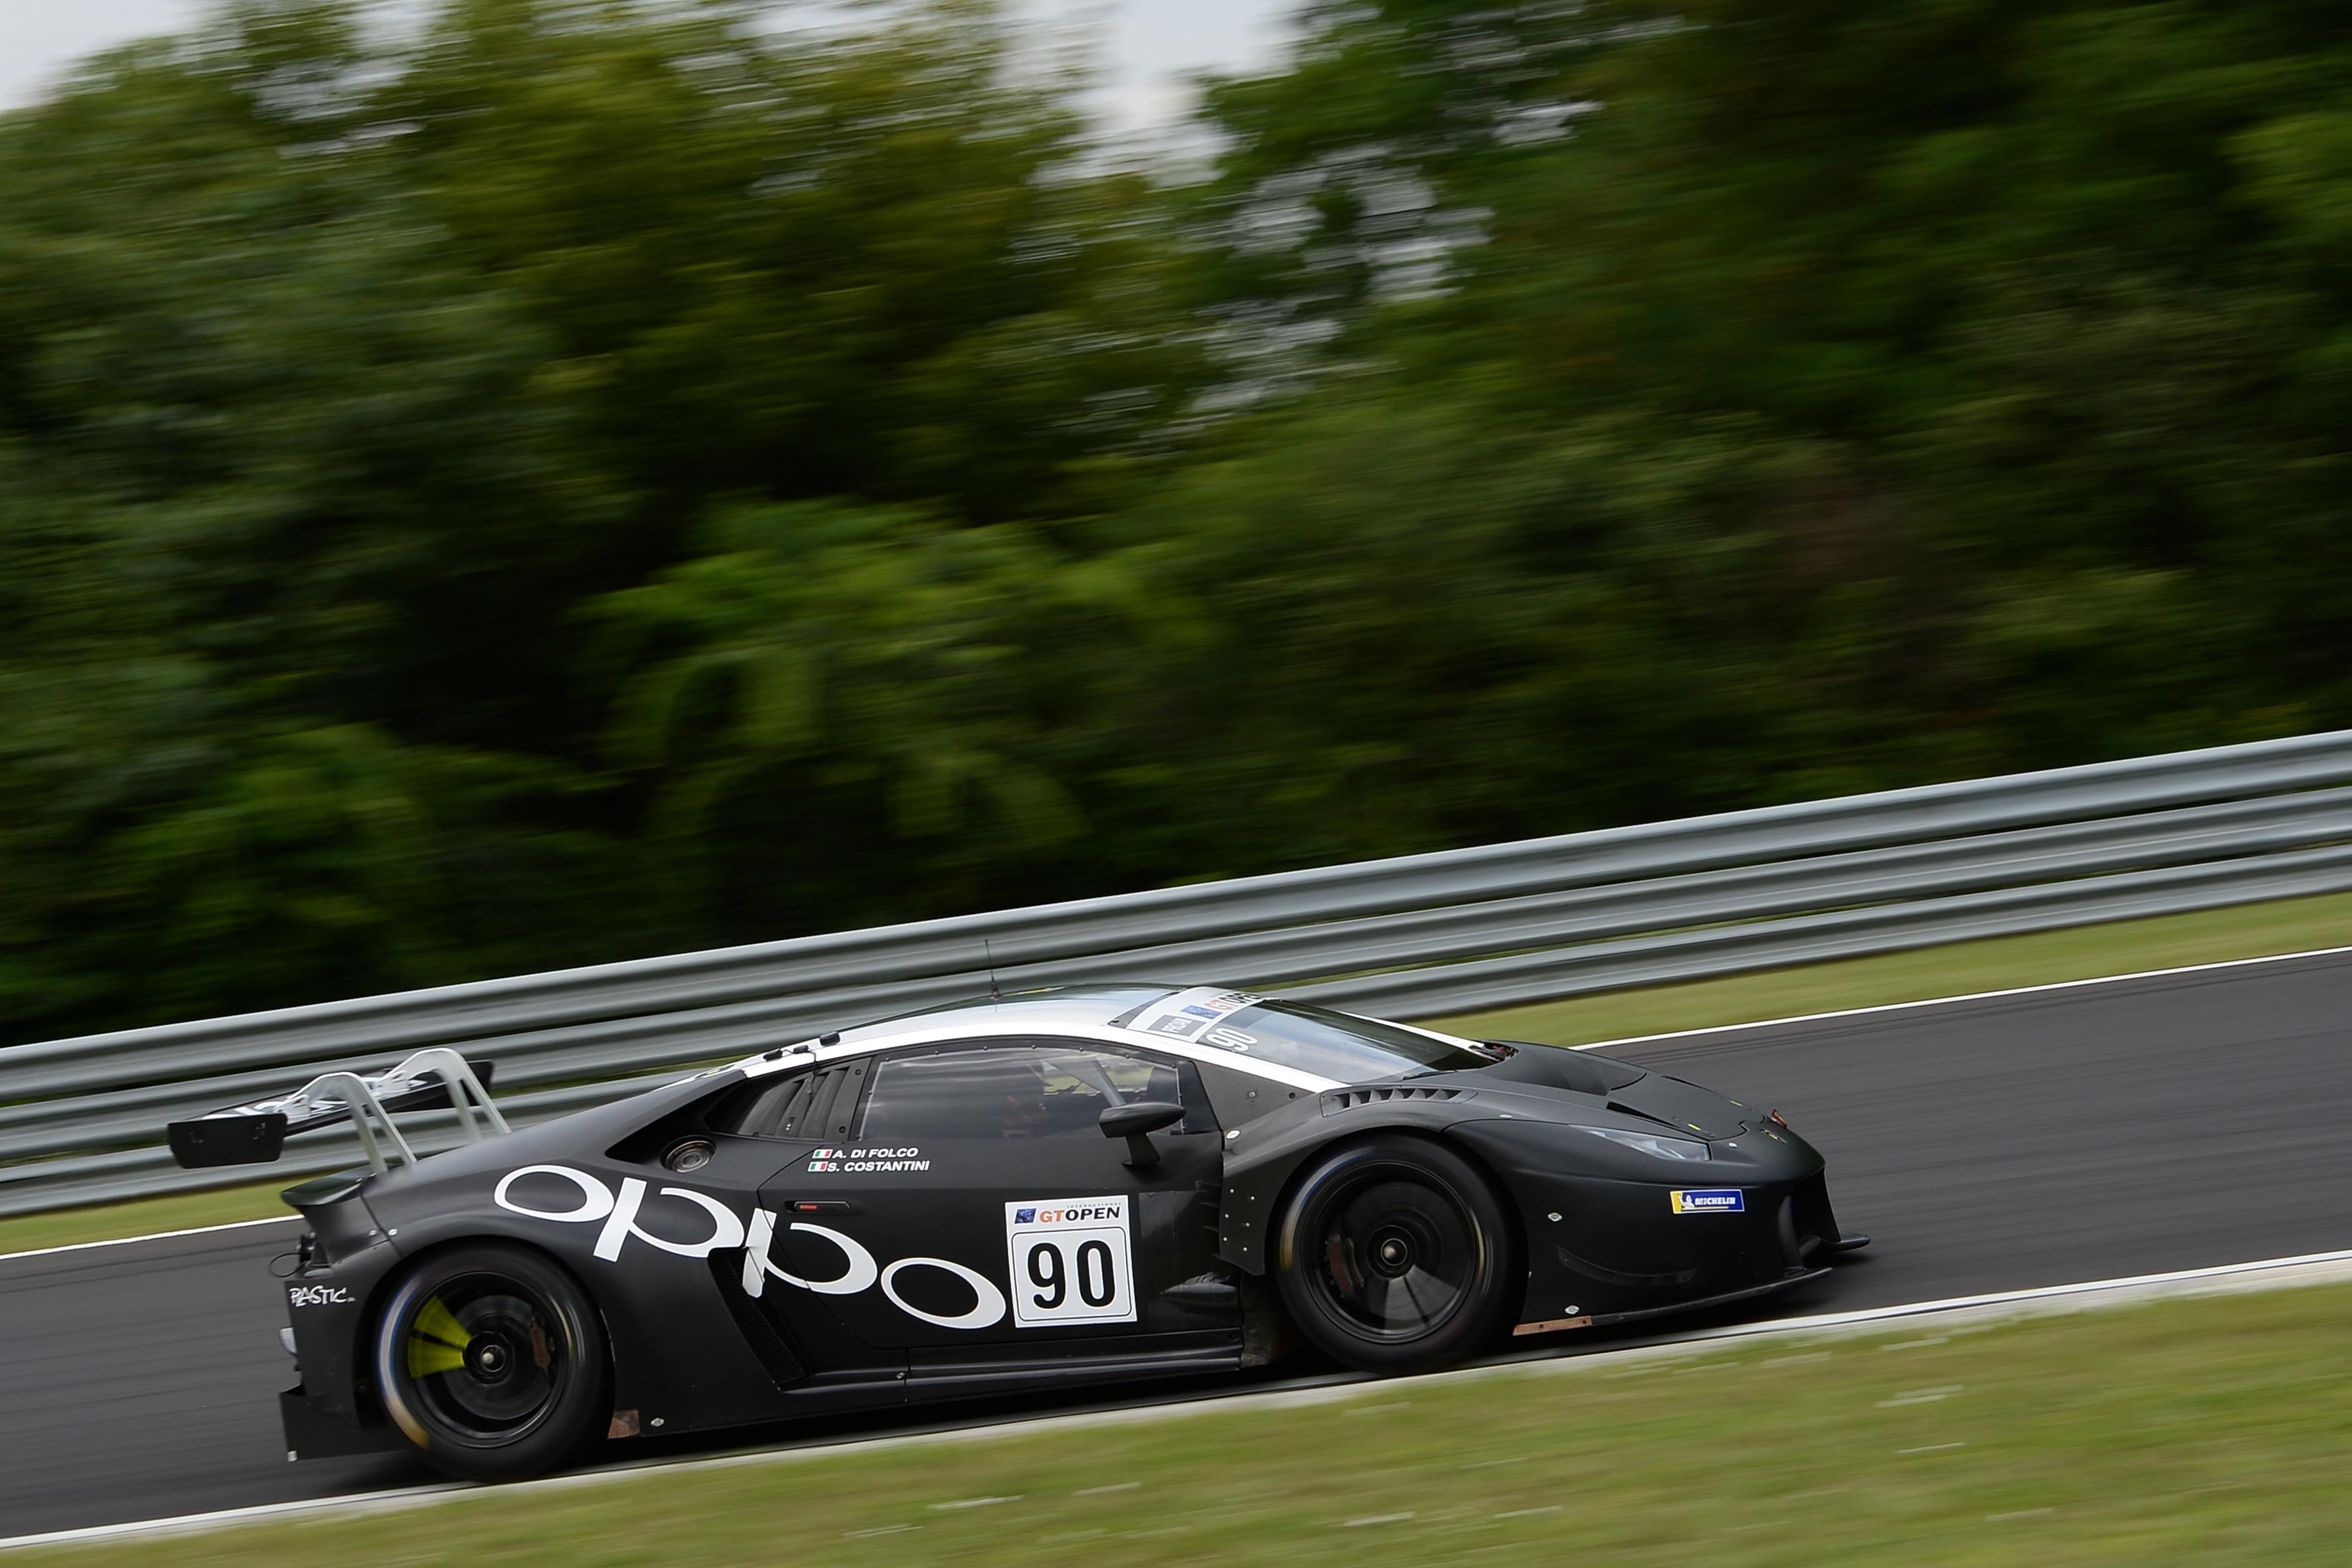 International GT Open - Target Racing set for the Hungaroring Challenge